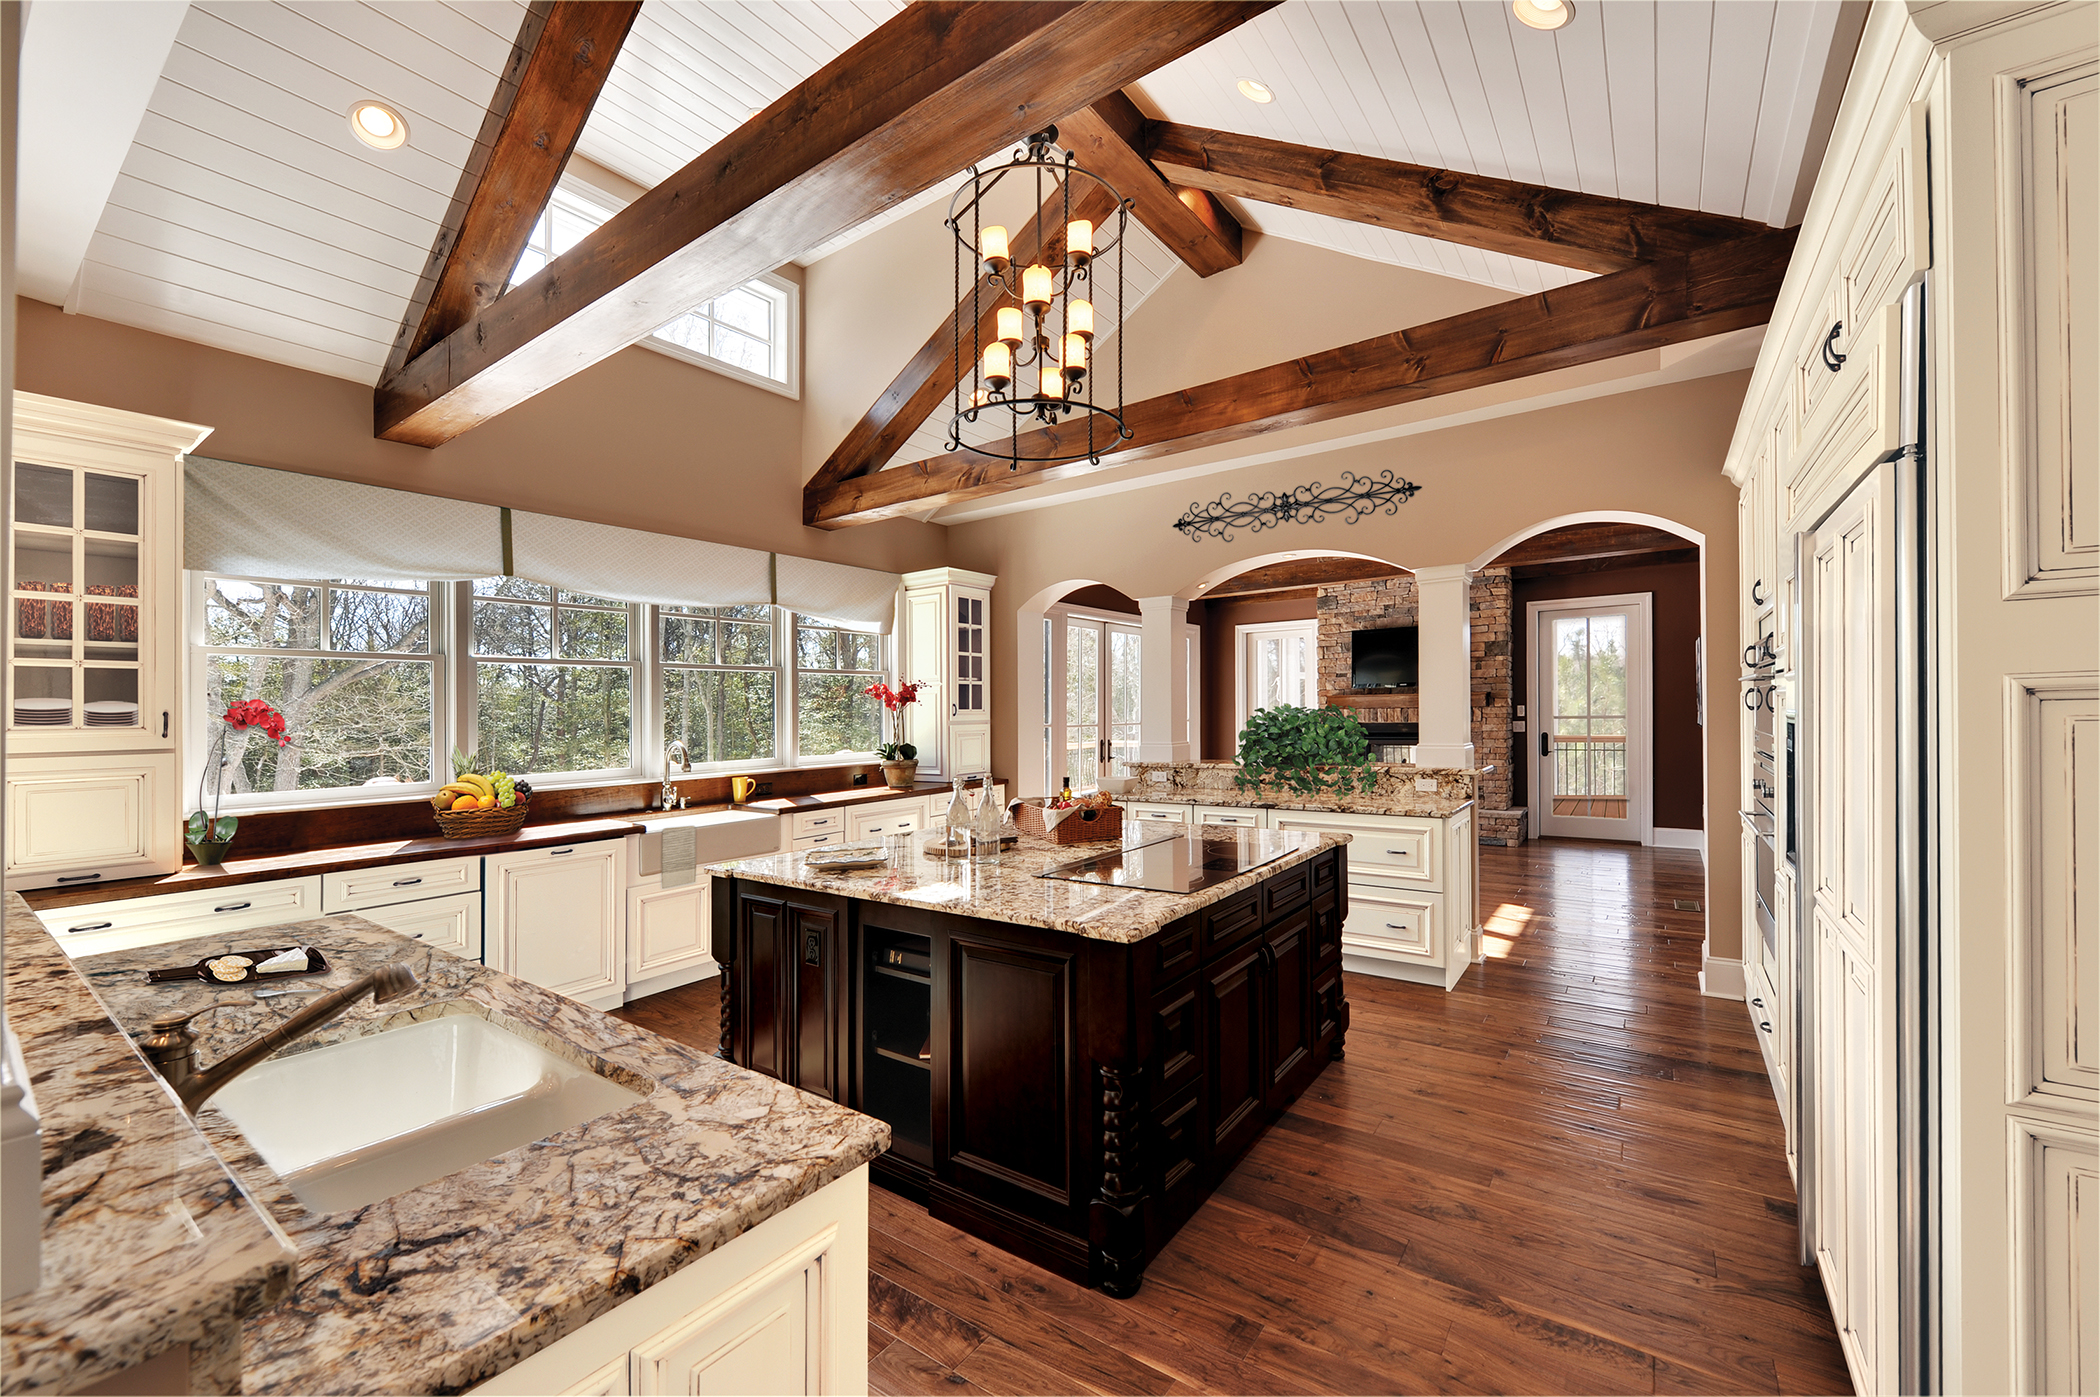 42 Best Kitchen Design Ideas With Different Styles And: What's Your Kitchen Style?